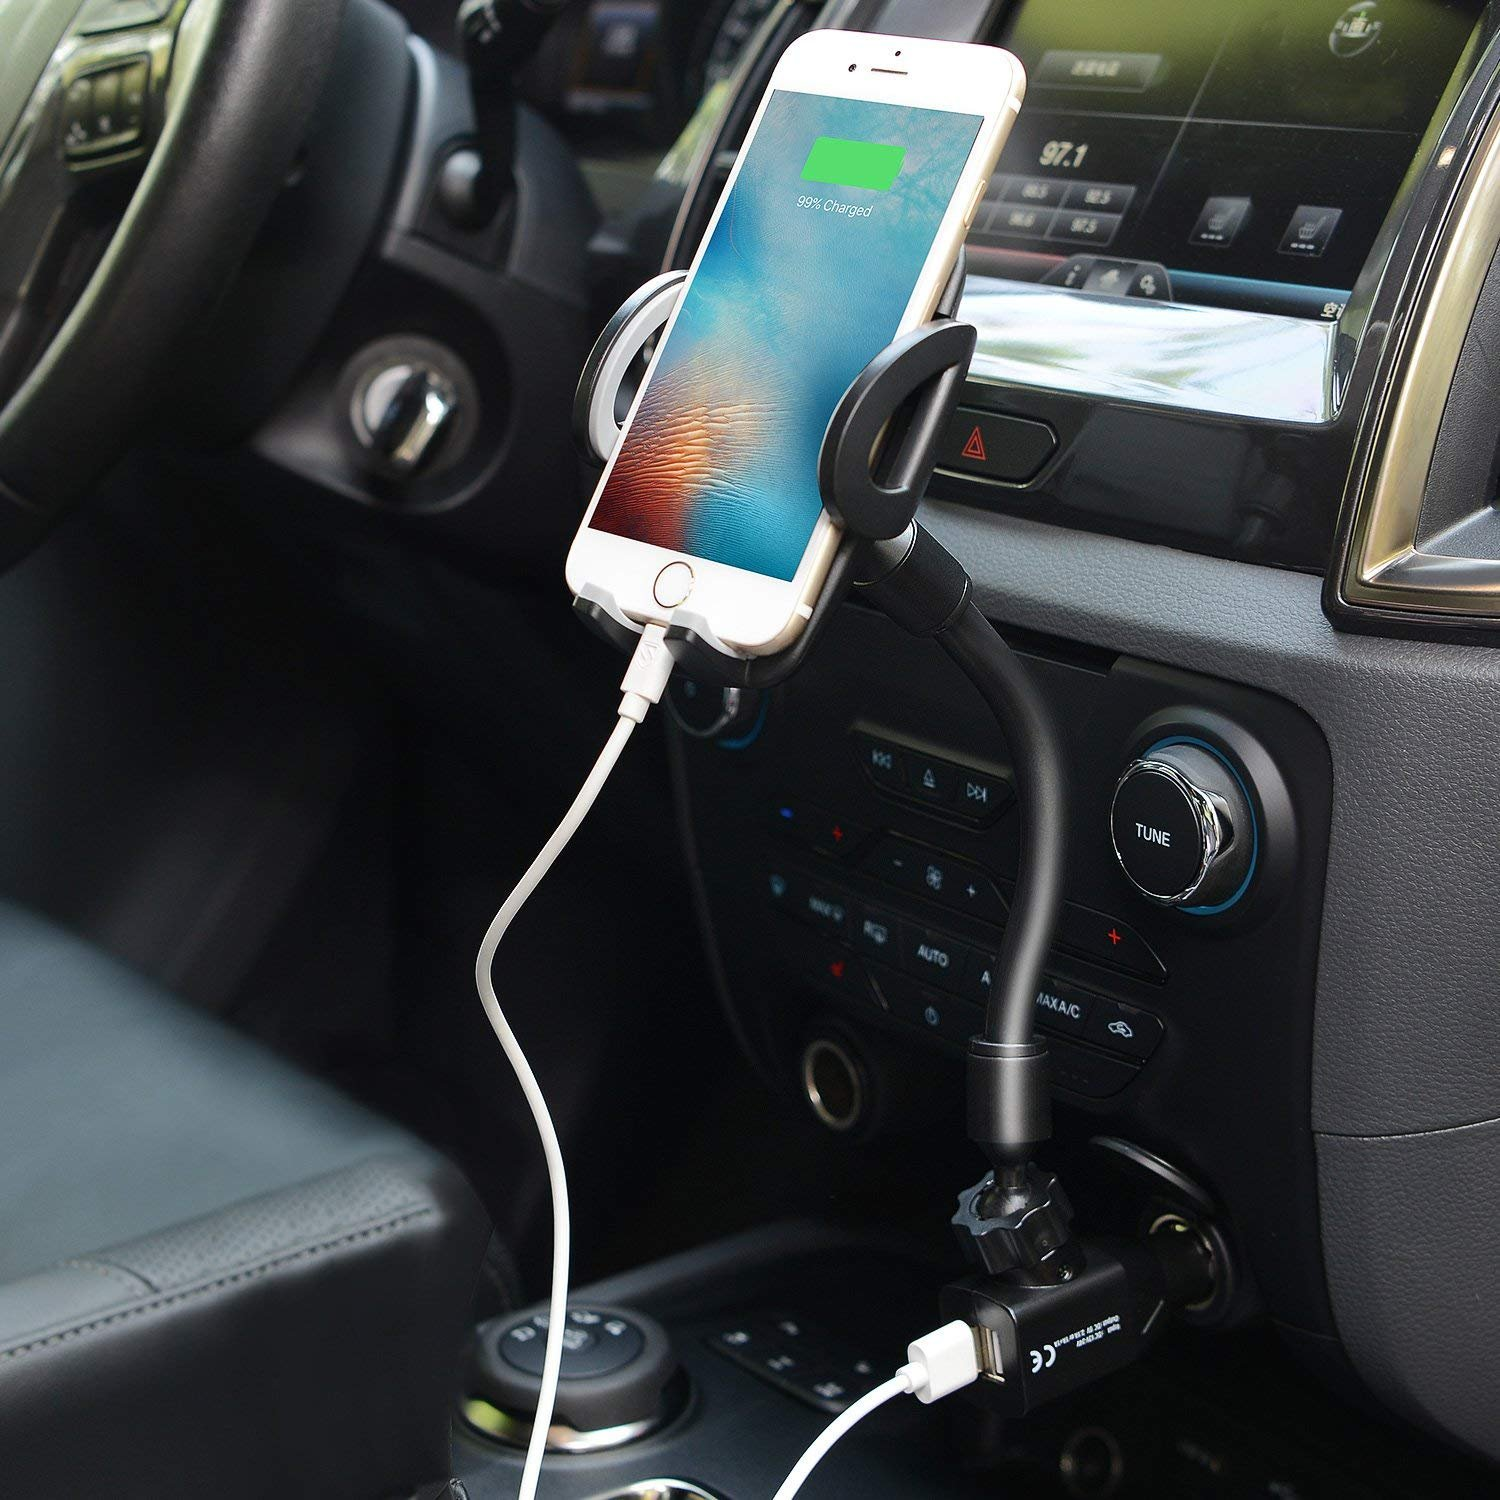 3-in-1 Car Phone Mount, Cell Phone Holder Cradle with Dual USB 2.1A Charger Compatible with iPhone X 8 7 6 6S Se 5S Samsung Galaxy S9 S8 S7 S6 S5, HTC LG Sony Nexus Motorola and More by Amoner